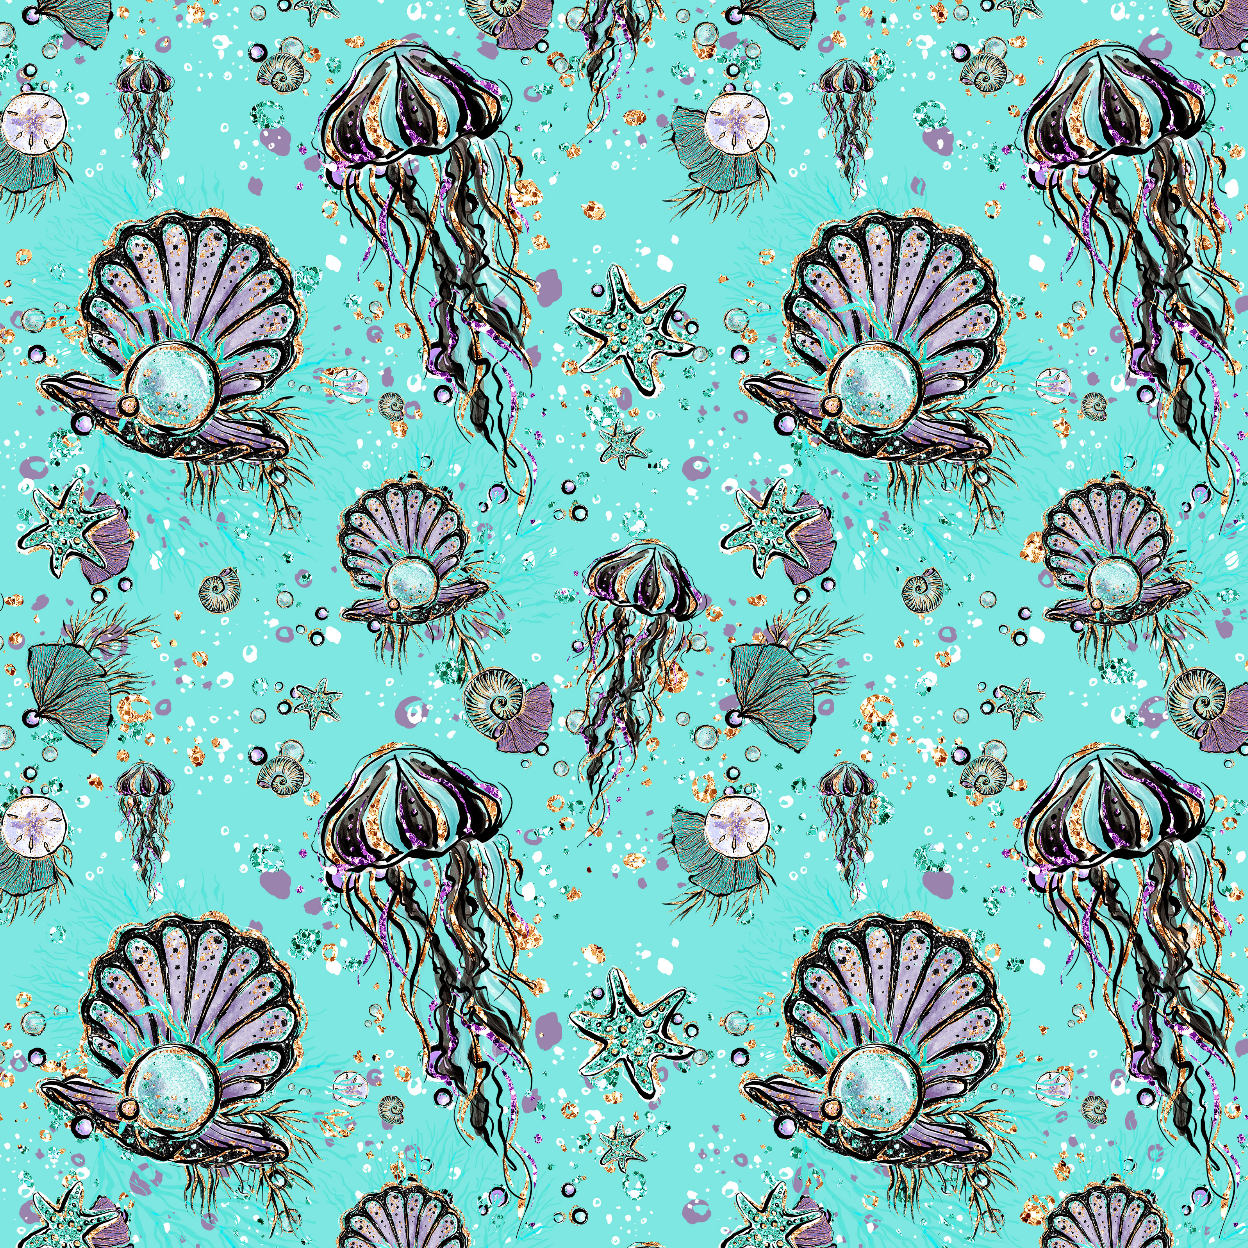 PRE ORDER - Audrey Jelly Fish - Digital Fabric Print